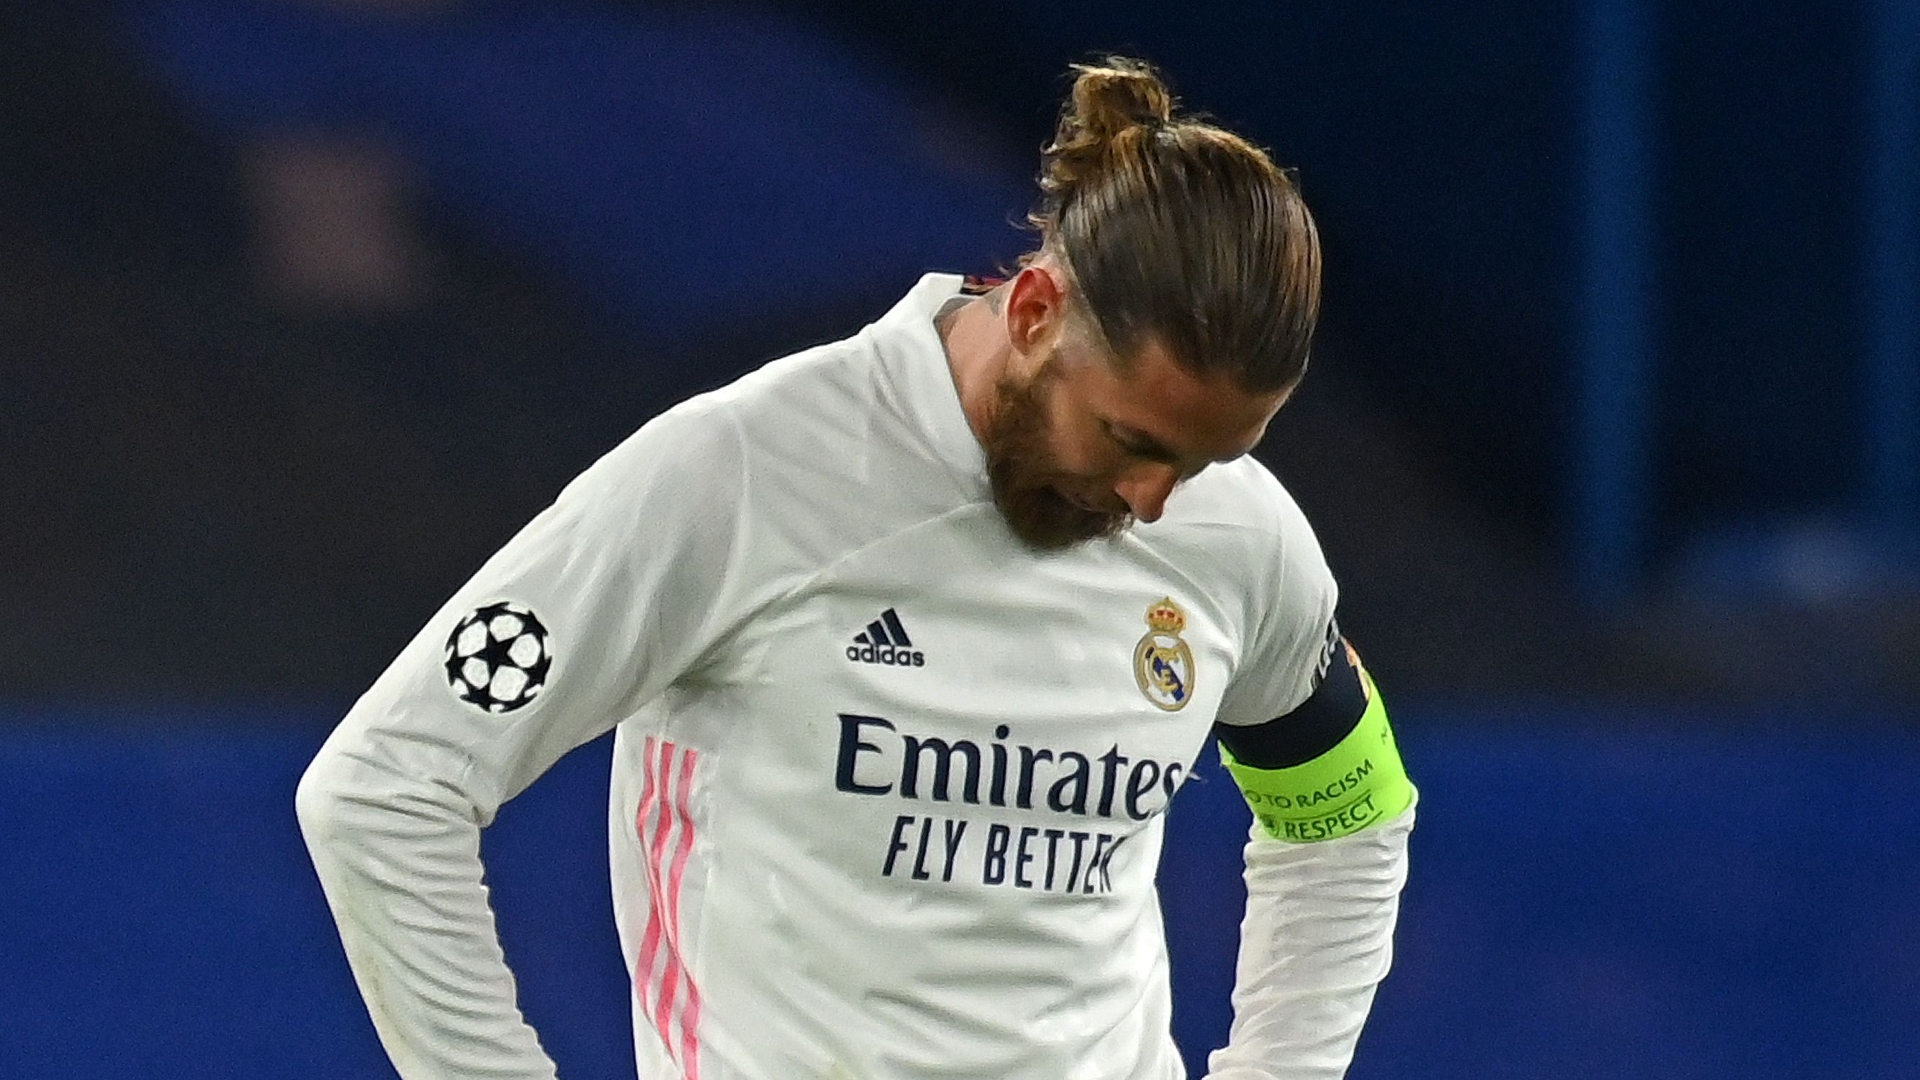 Real Madrid always rise from defeats - Ramos defiant after Champions League exit